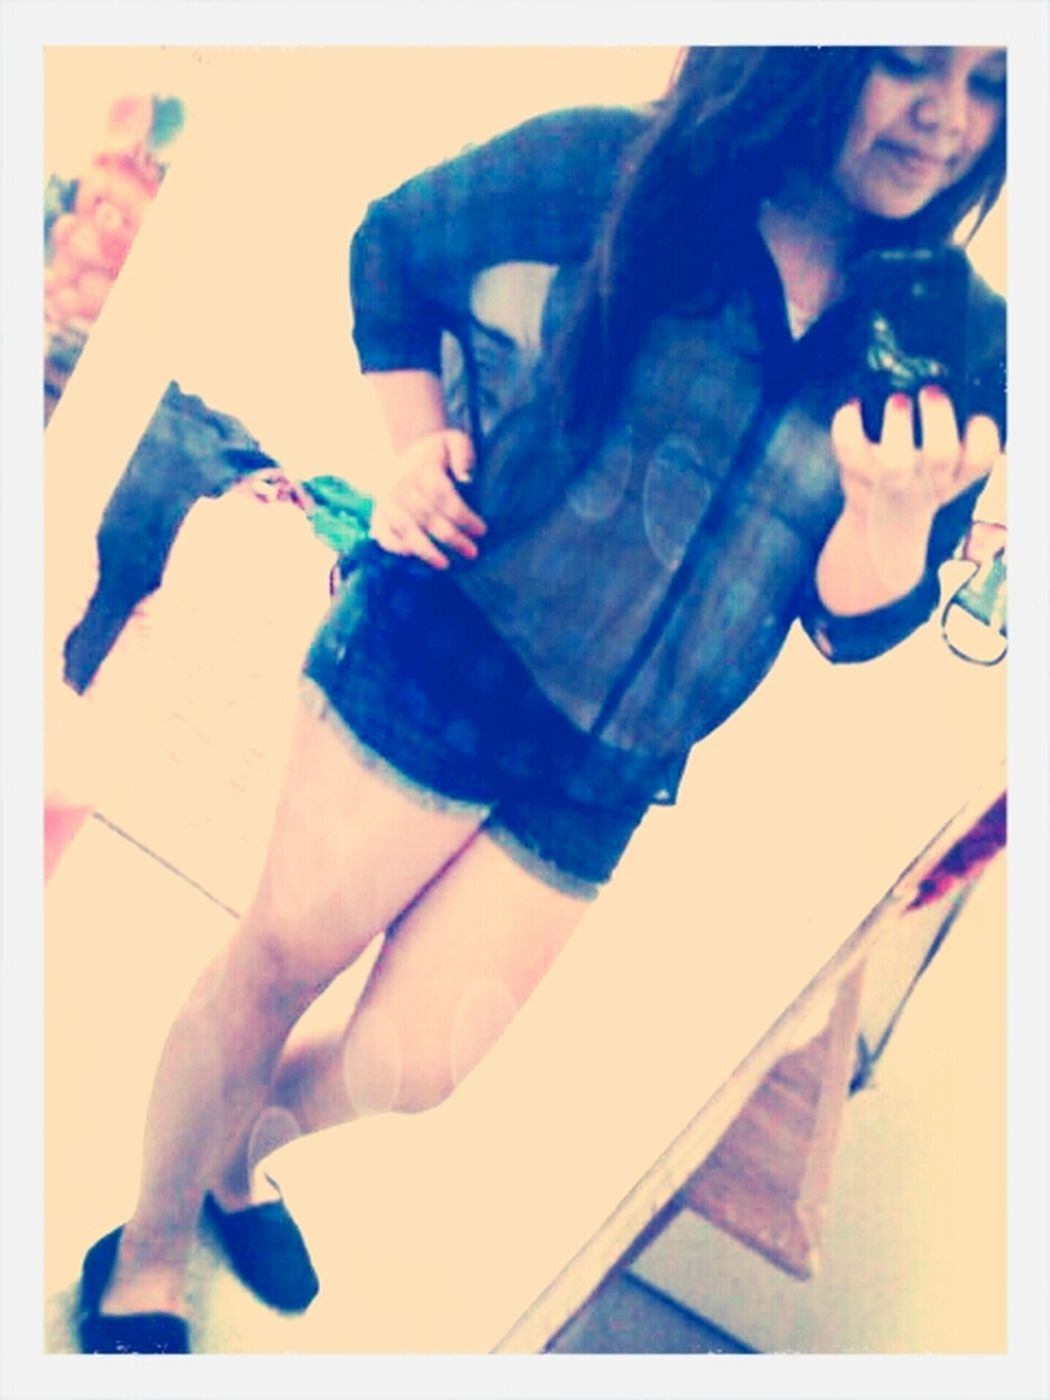 The Other Day Thoo cx